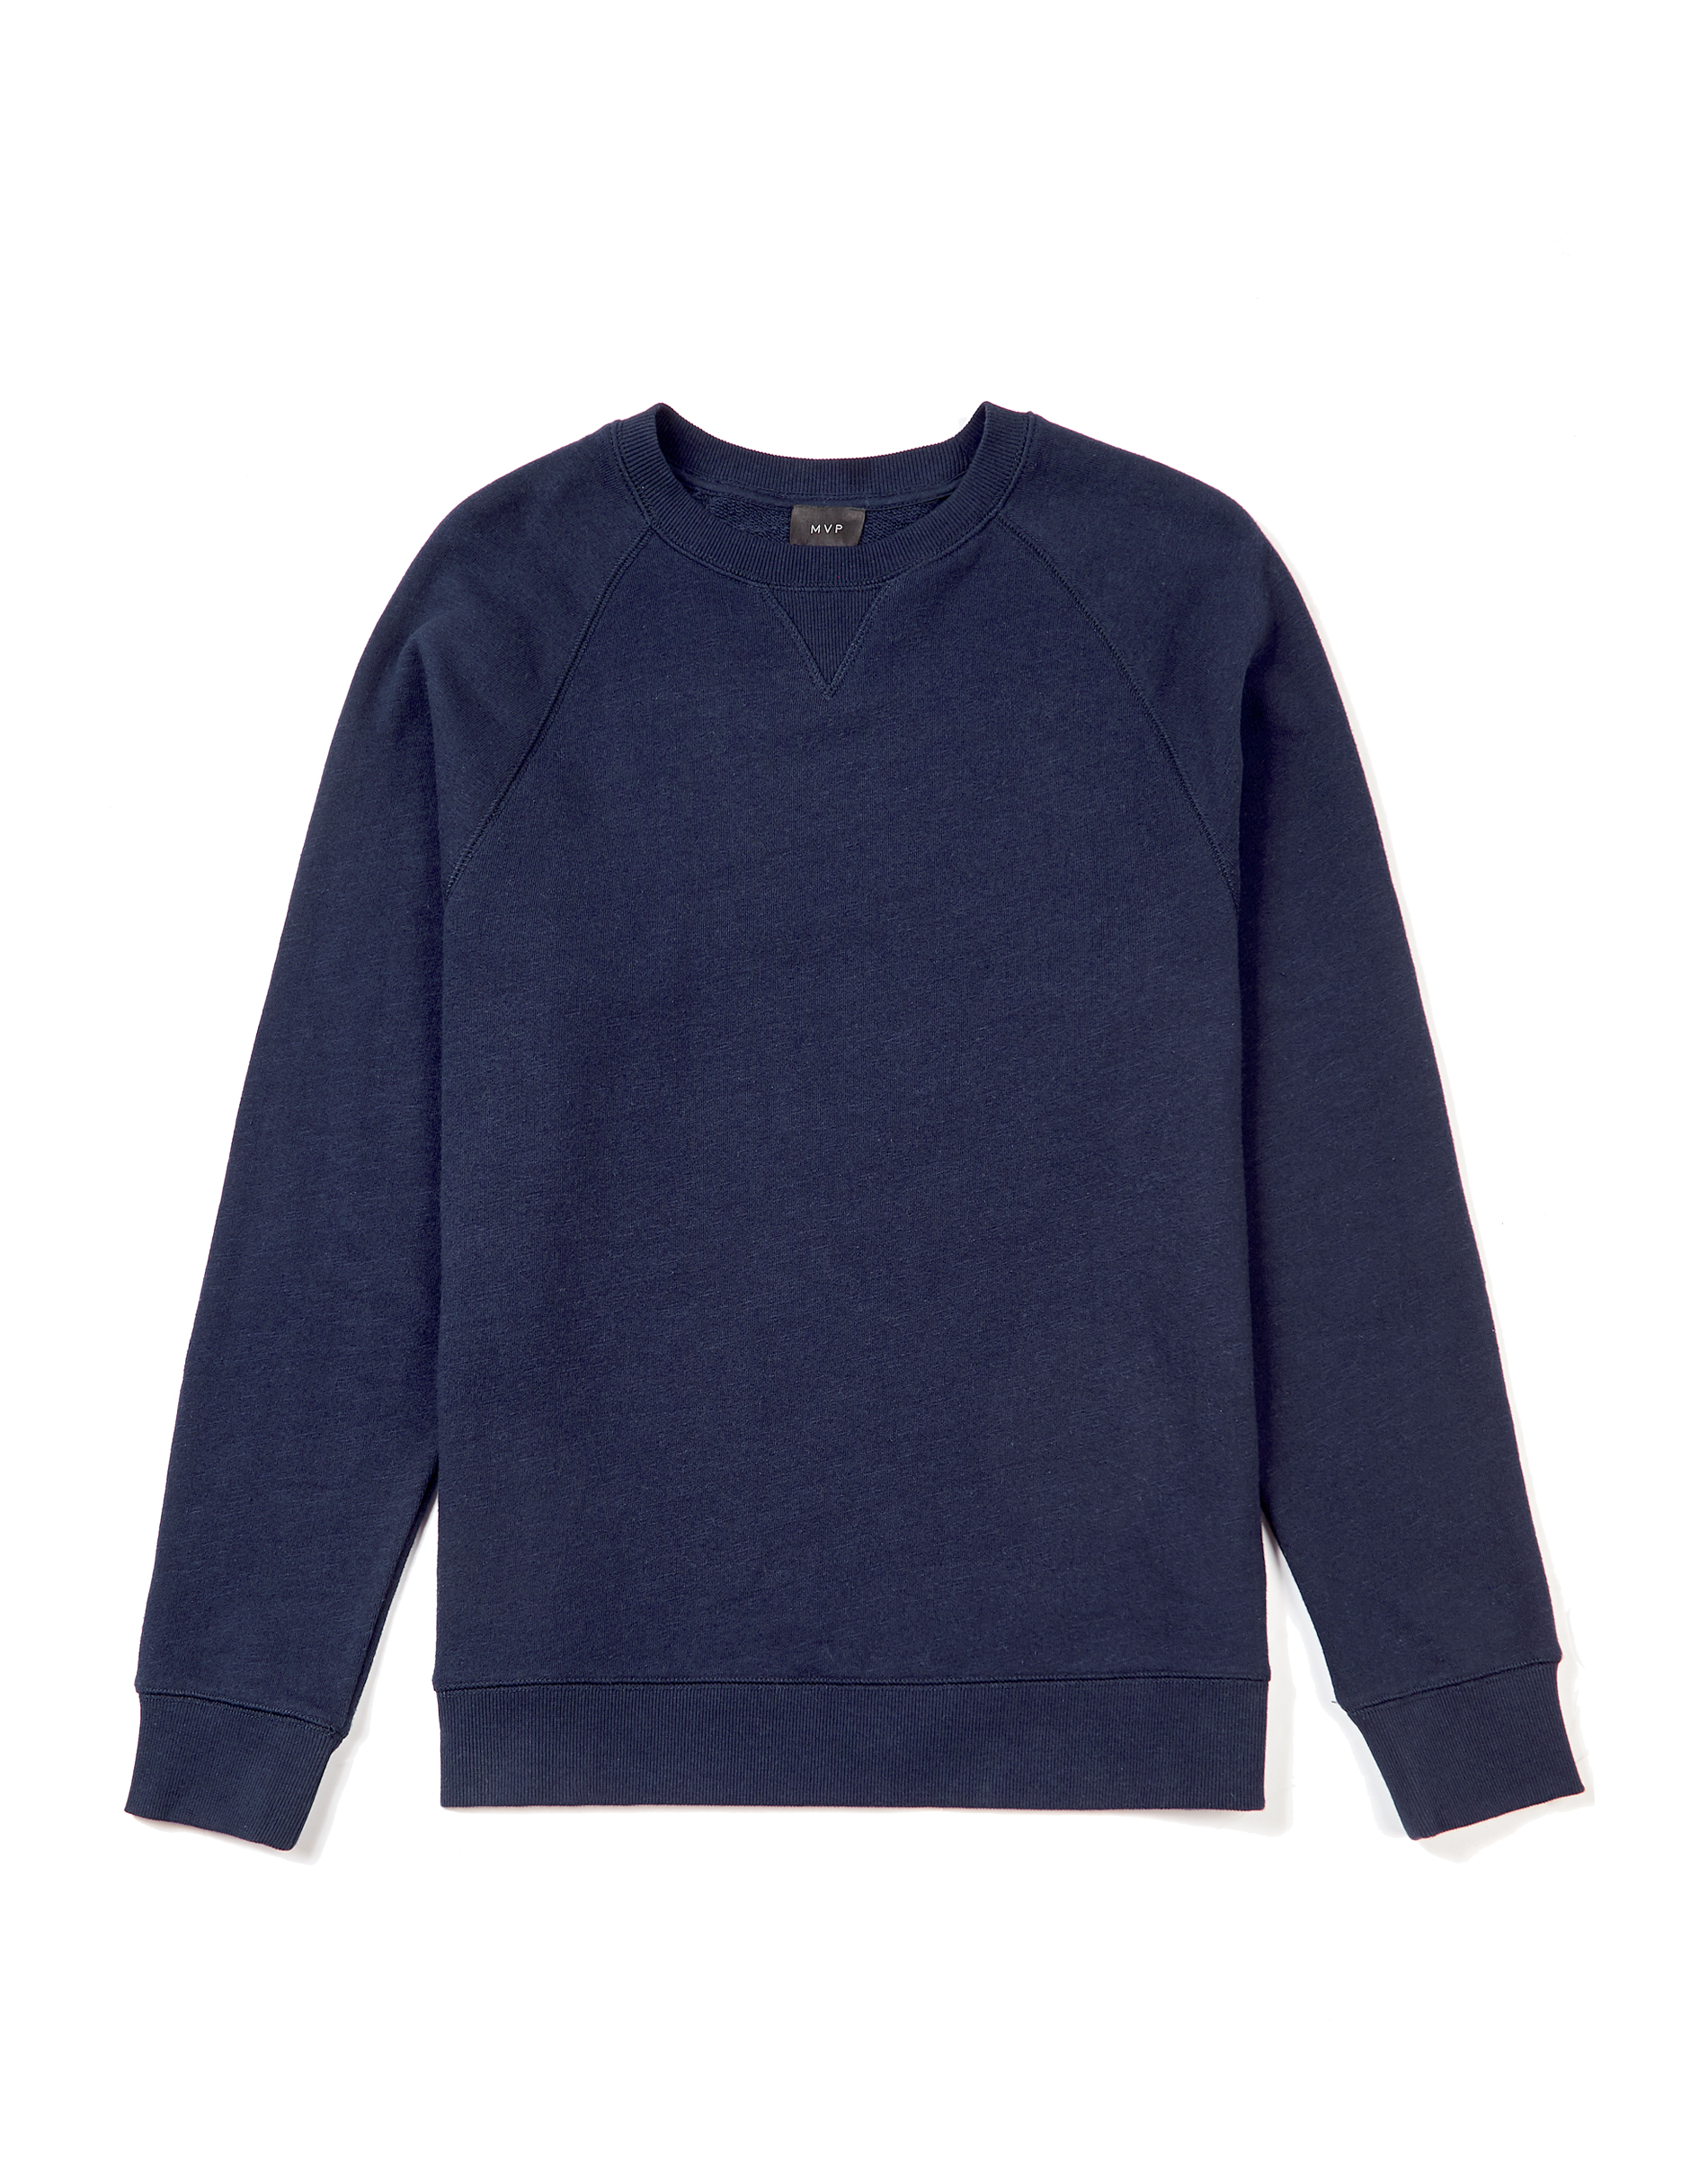 MVP Lindley Raglan Loop Back Sweater - Navy